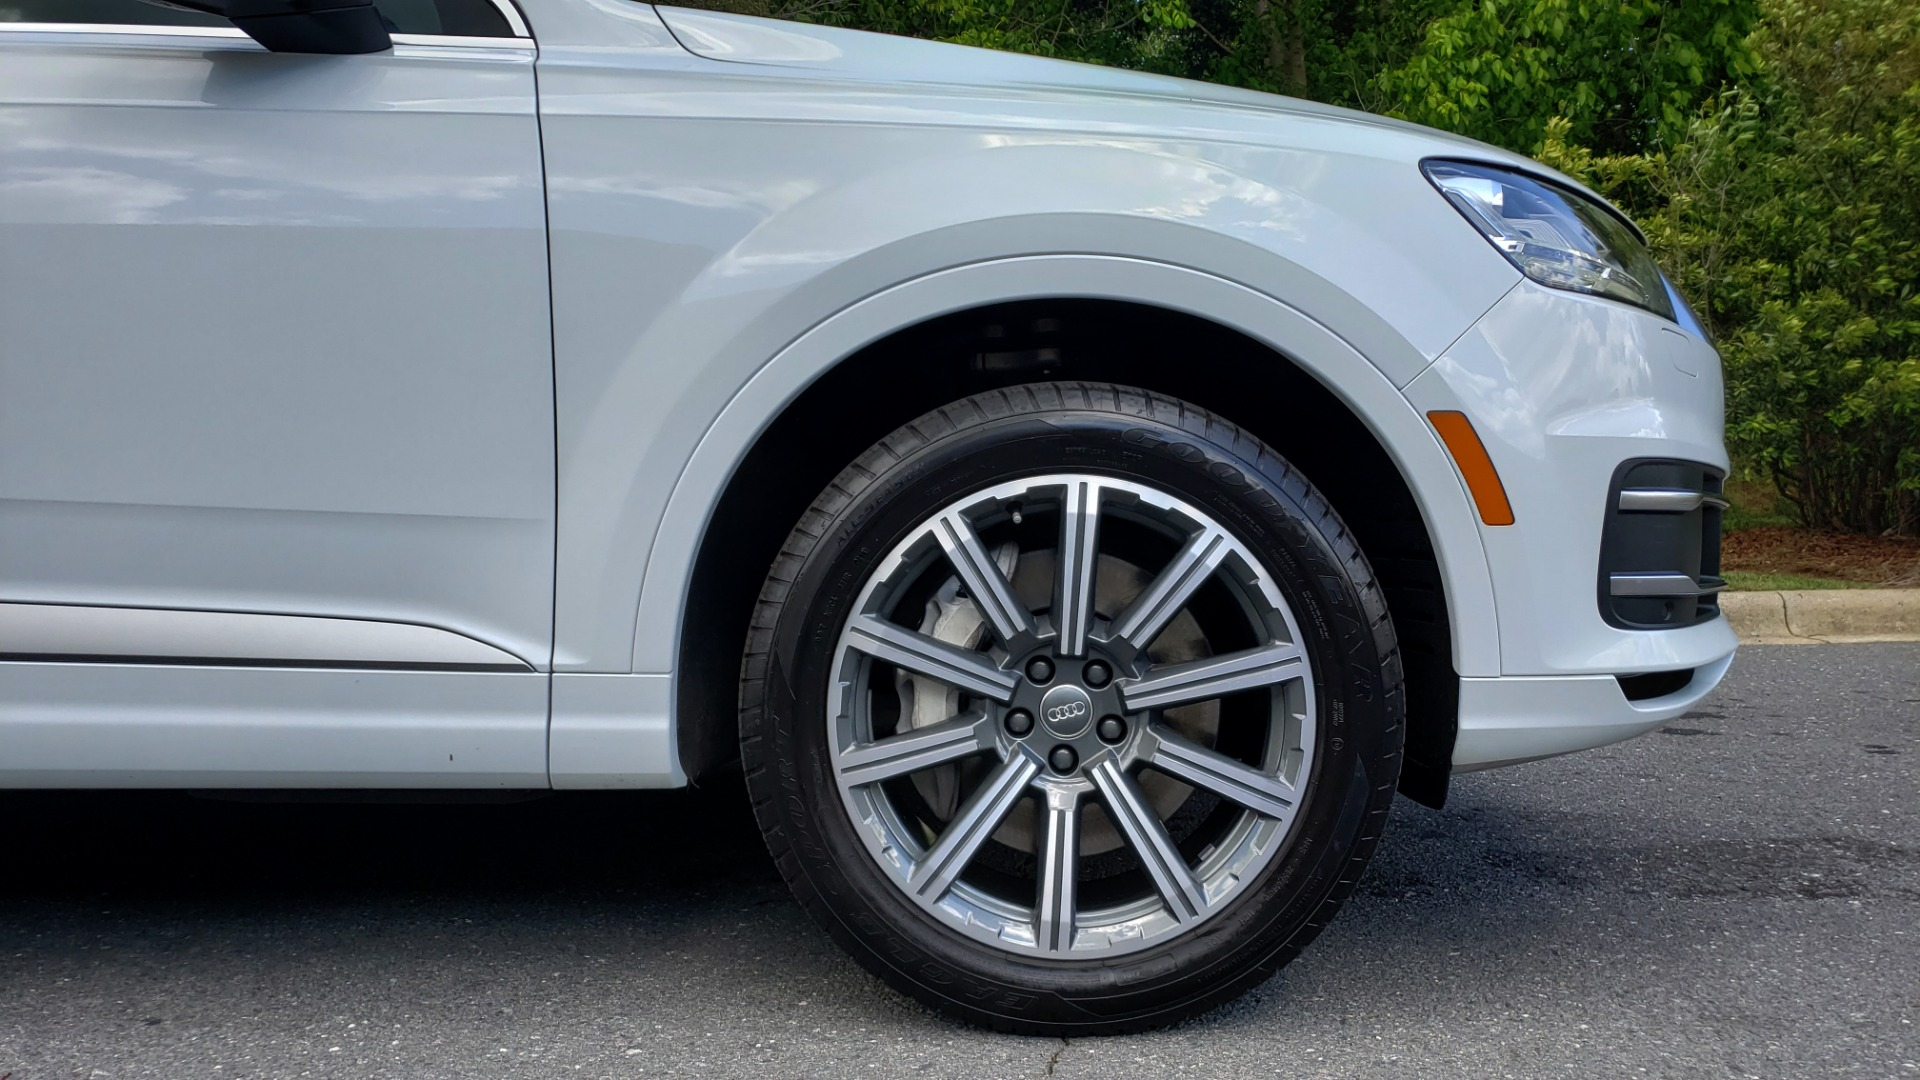 Used 2017 Audi Q7 PREMIUM PLUS / VISION PKG / NAV / PANO-ROOF / 3-ROW / REARVIEW for sale Sold at Formula Imports in Charlotte NC 28227 88